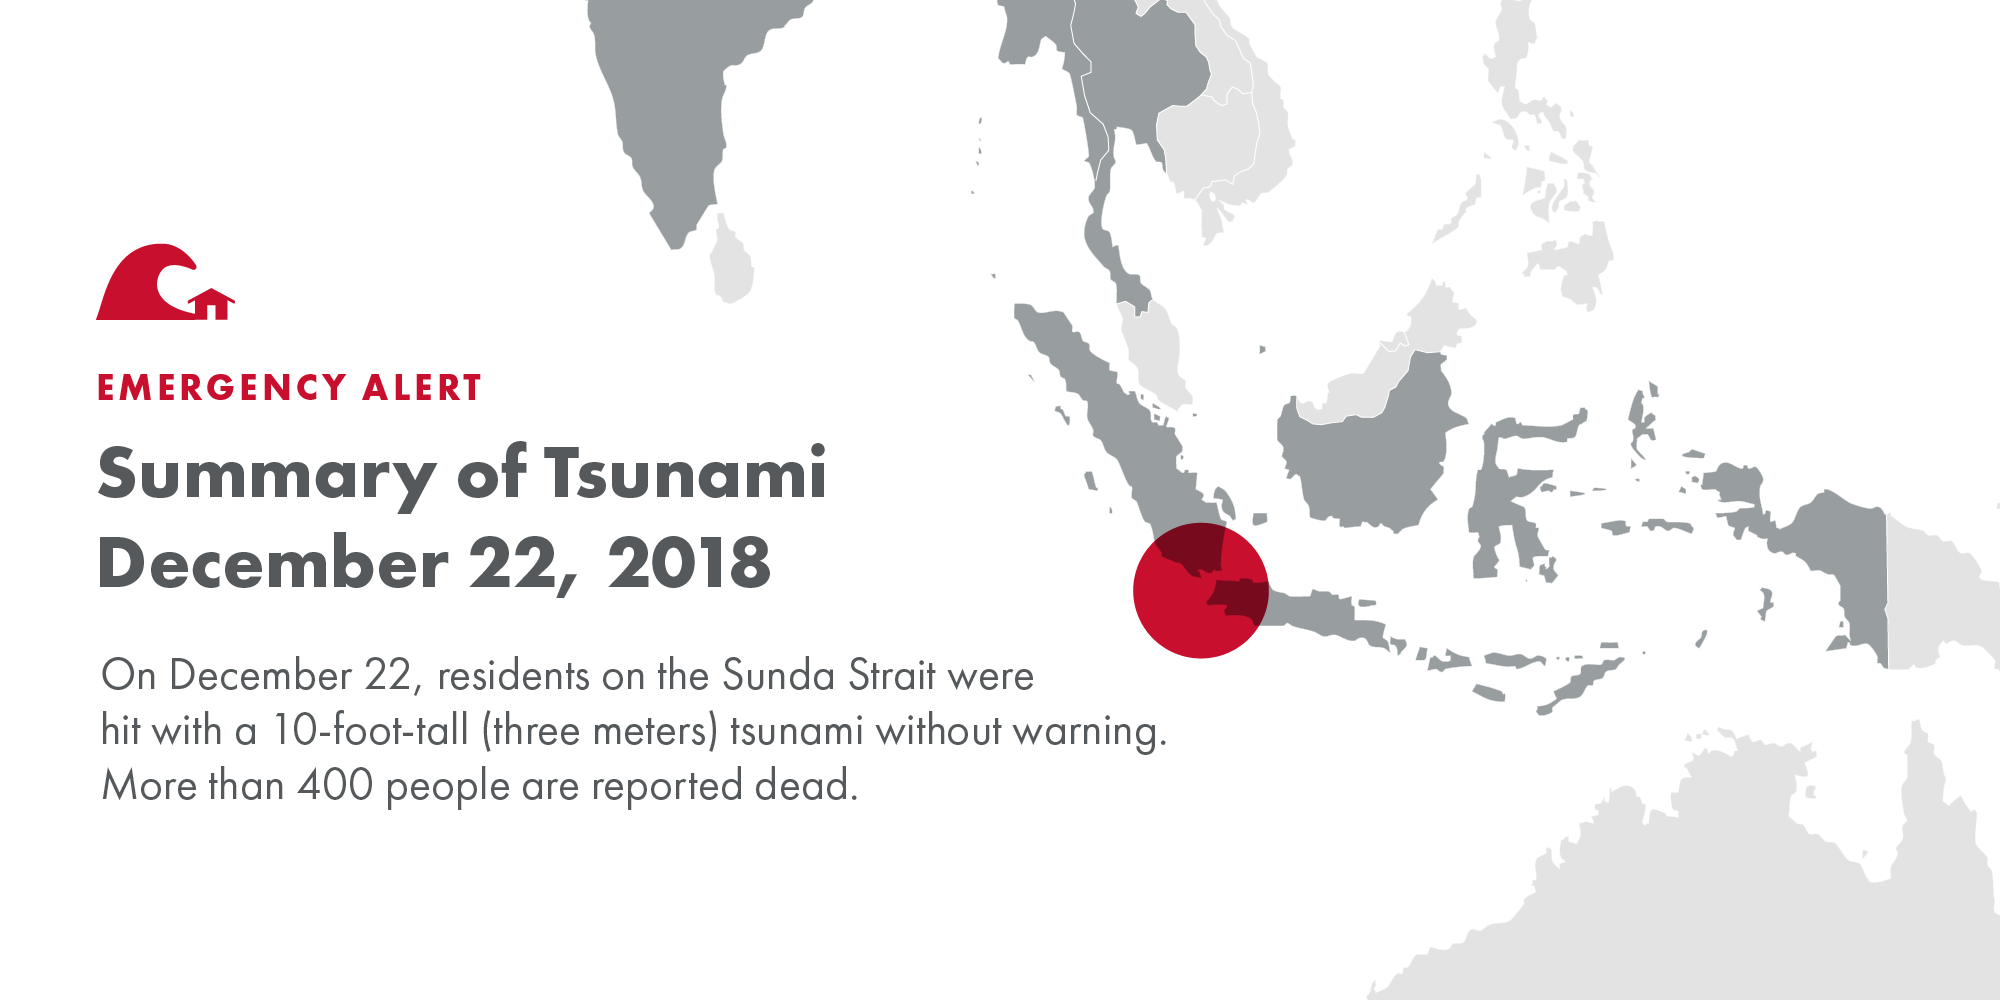 Summary of Tsunami December 22, 2018